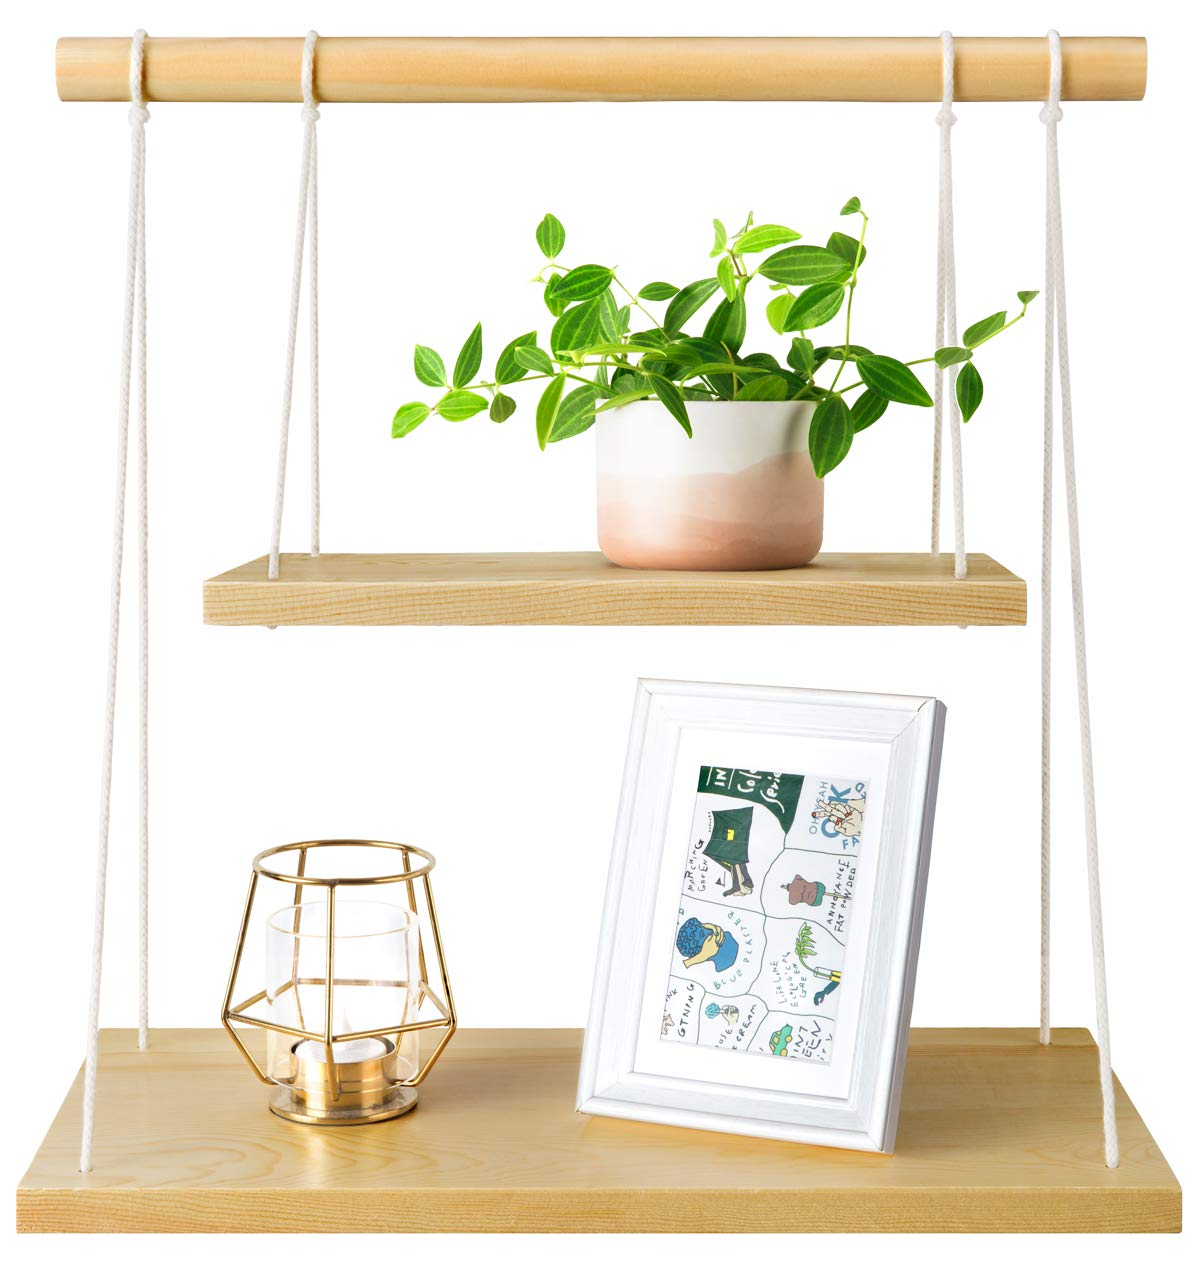 "Mkono Wall Hanging Shelf Wood Floating Shelves Storage Display Swing Rope Organizer - This wall hanging shelf can be installed in window or wall space and incorporated easily into any space, you can explore your imagination and decorate your home, office, studio or cafe in a fun and original way. Material: Pine and cotton rope. The wood stick is 7/8"" in thickness, strong and durable. The props in the picture are not included. Approximately 9"" between shelves, bring fun to display your favorite small plants, candles, photo frames, bathroom sundries or other decorative objects, transform any small or unused space into beautiful displays and conversation pieces. - wall-shelves, living-room-furniture, living-room - 615ZEukLnPL -"